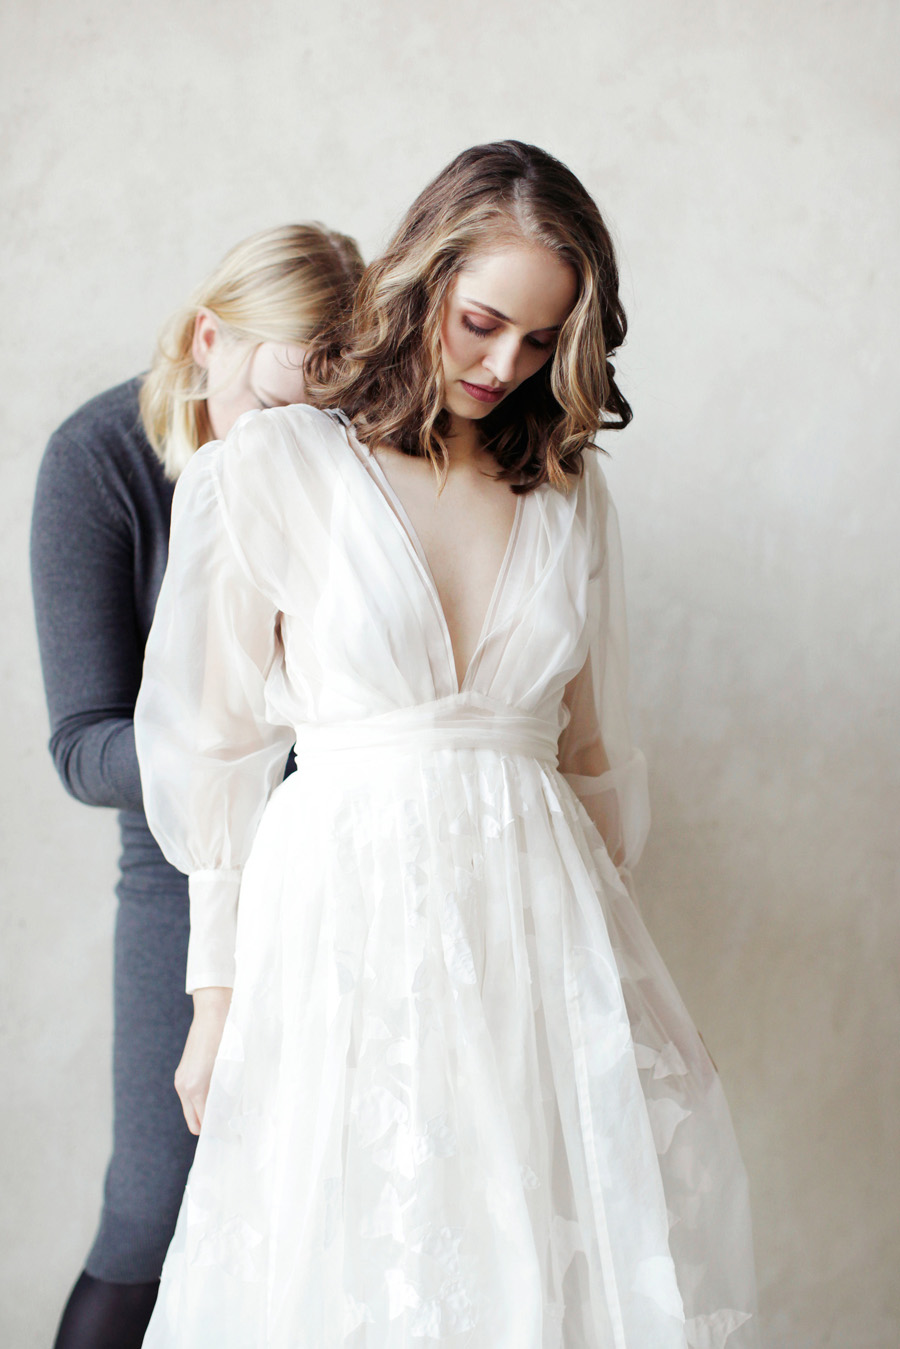 Advice on trying on wedding dresses, by Ailsa Munro on the English Wedding Blog (1)